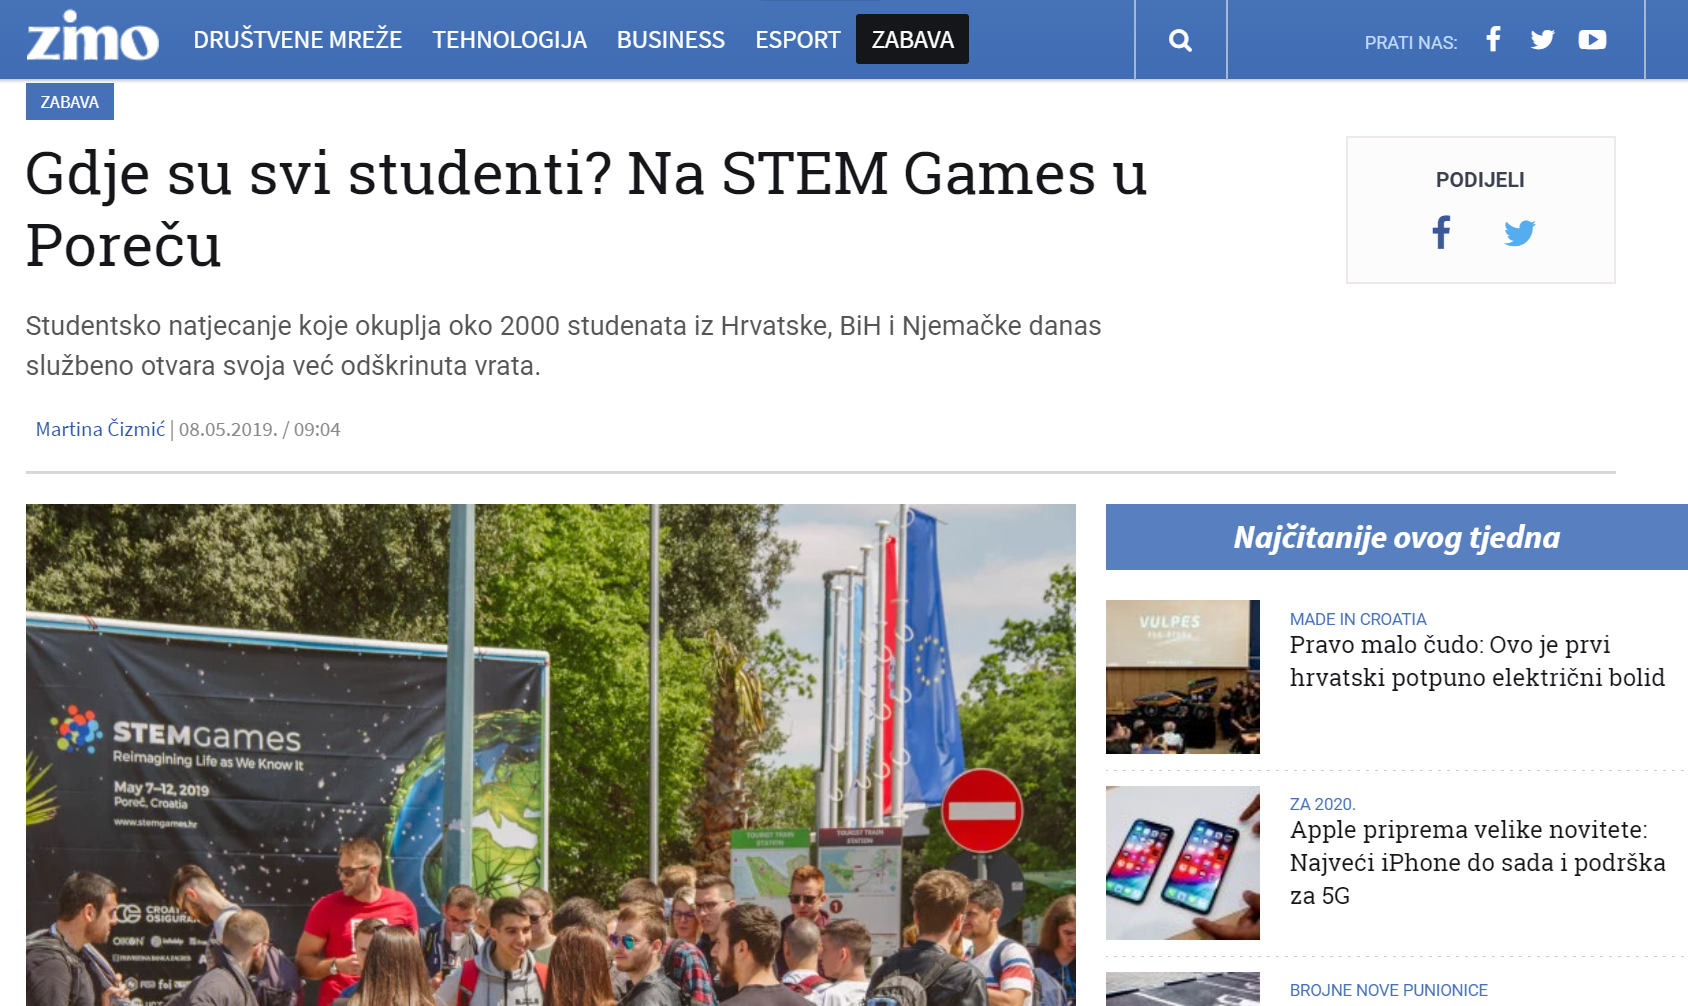 20190620 – STEM Games – Zimo druga objava